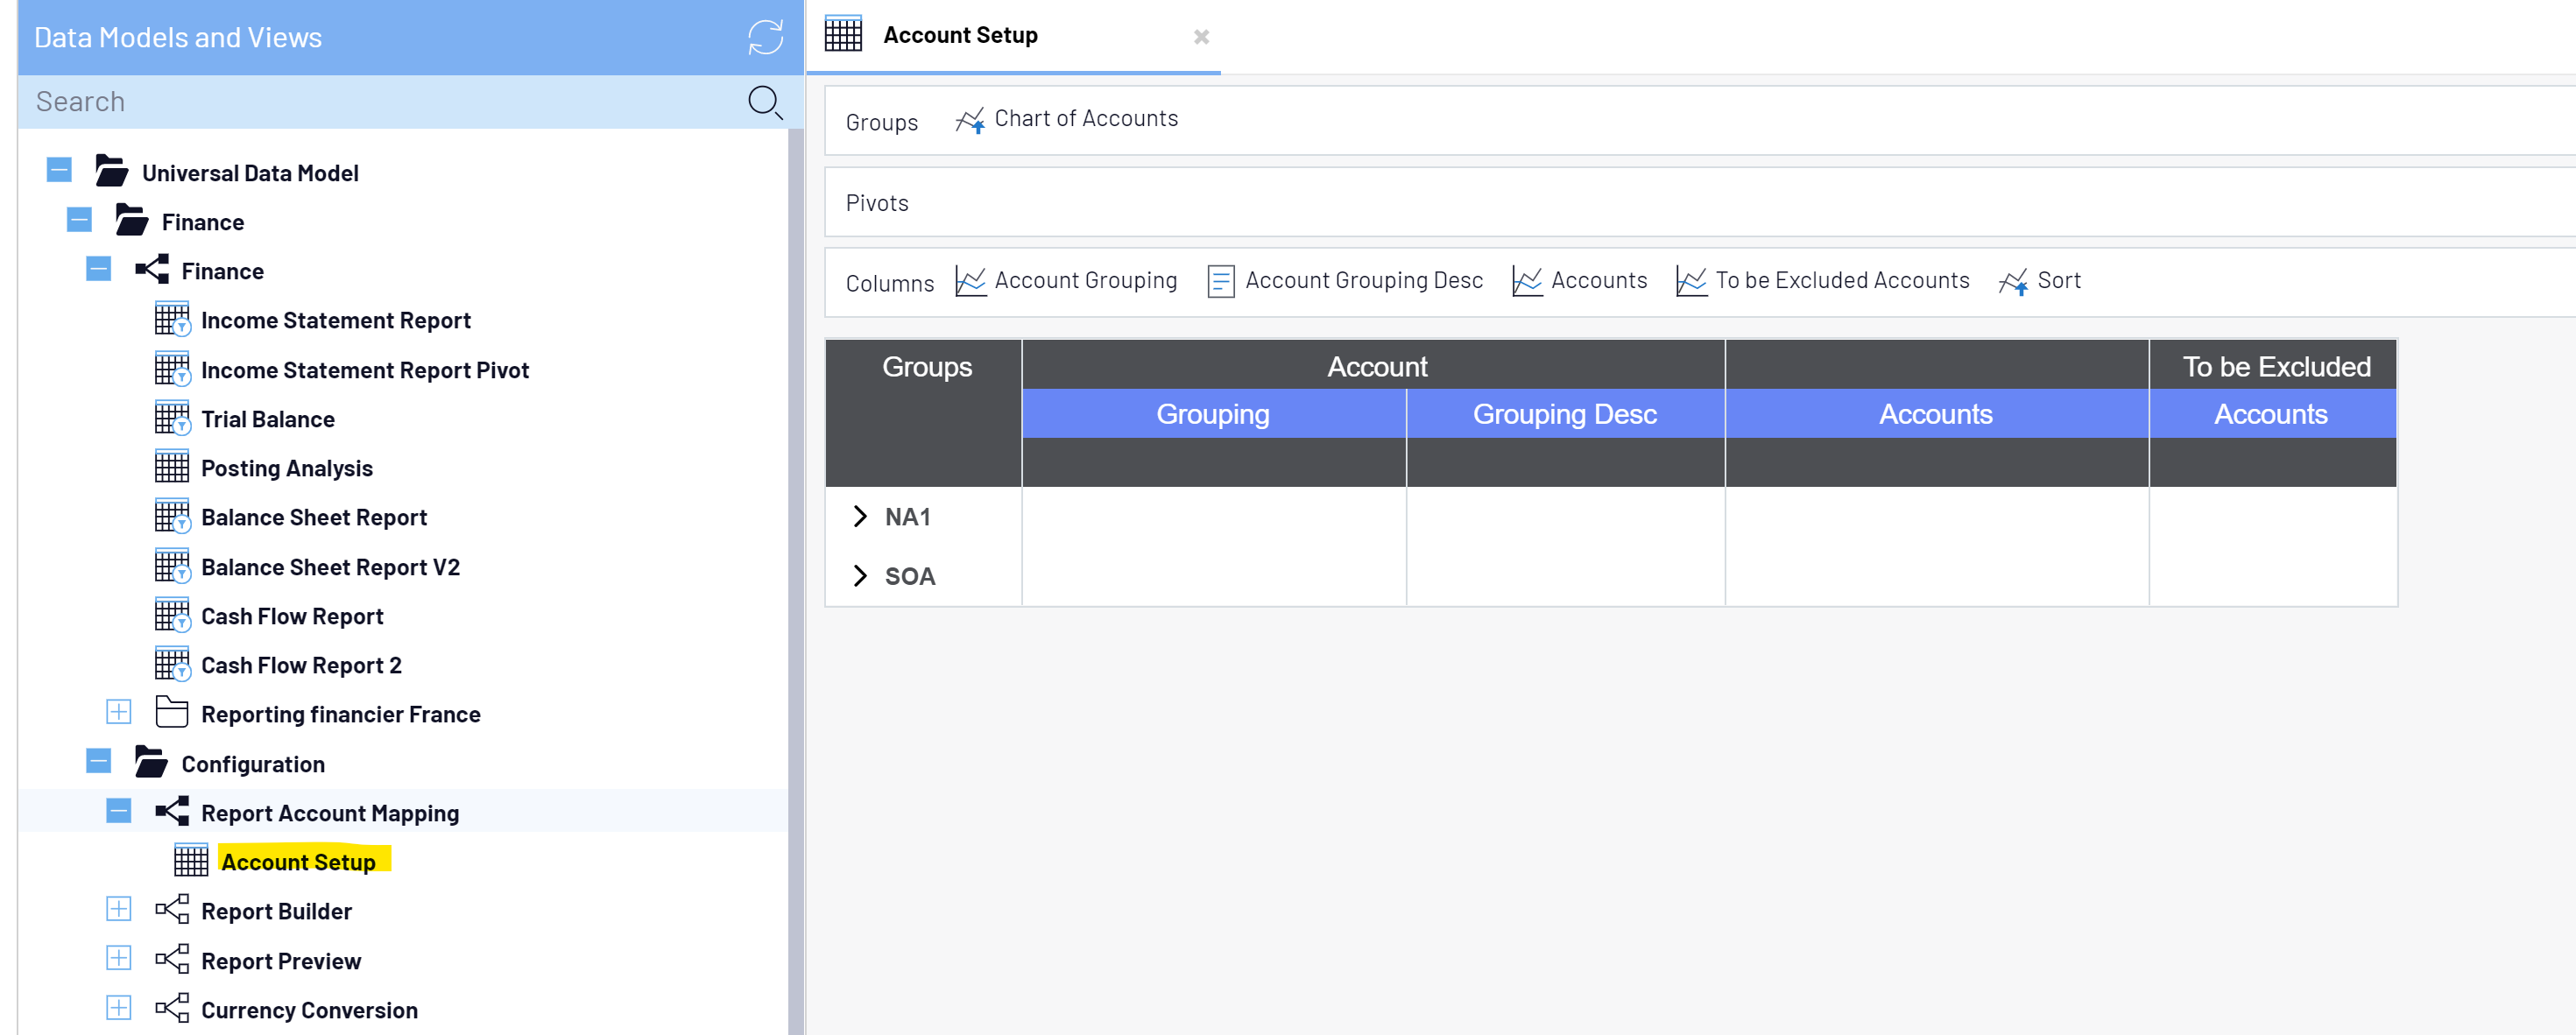 SEI Account Setup worksheet